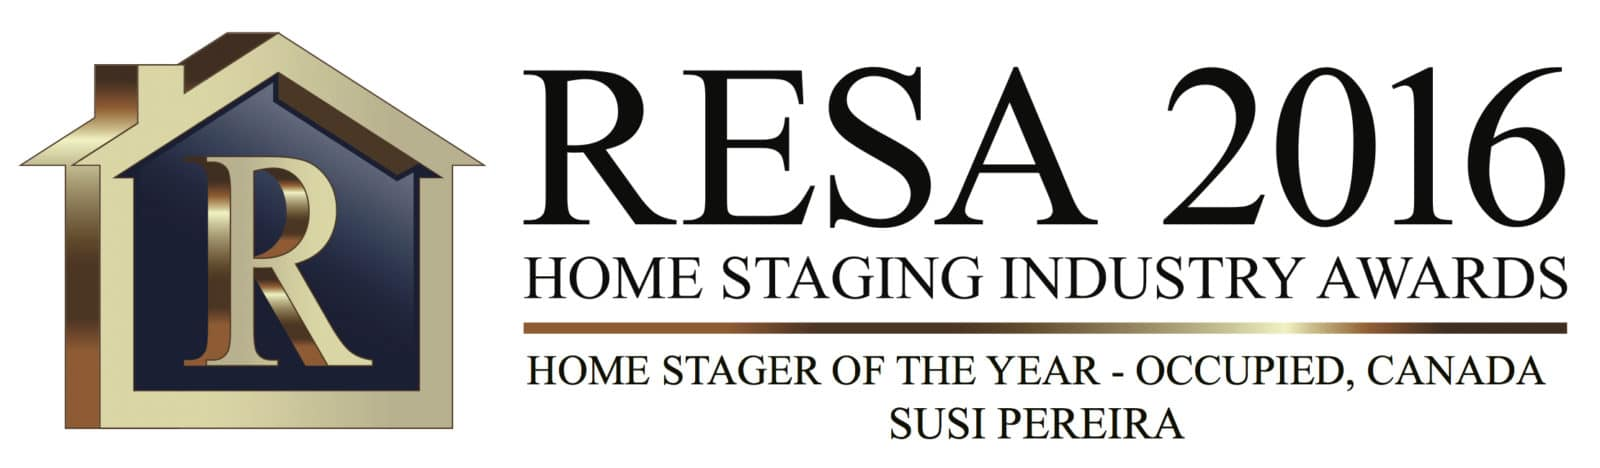 "Susi Pereira, owner of Well Dressed Home, won the prestigious award ""Occupied Home Stager of the Year"" for 2016 by the Real Estate Staging Association (RESA)."